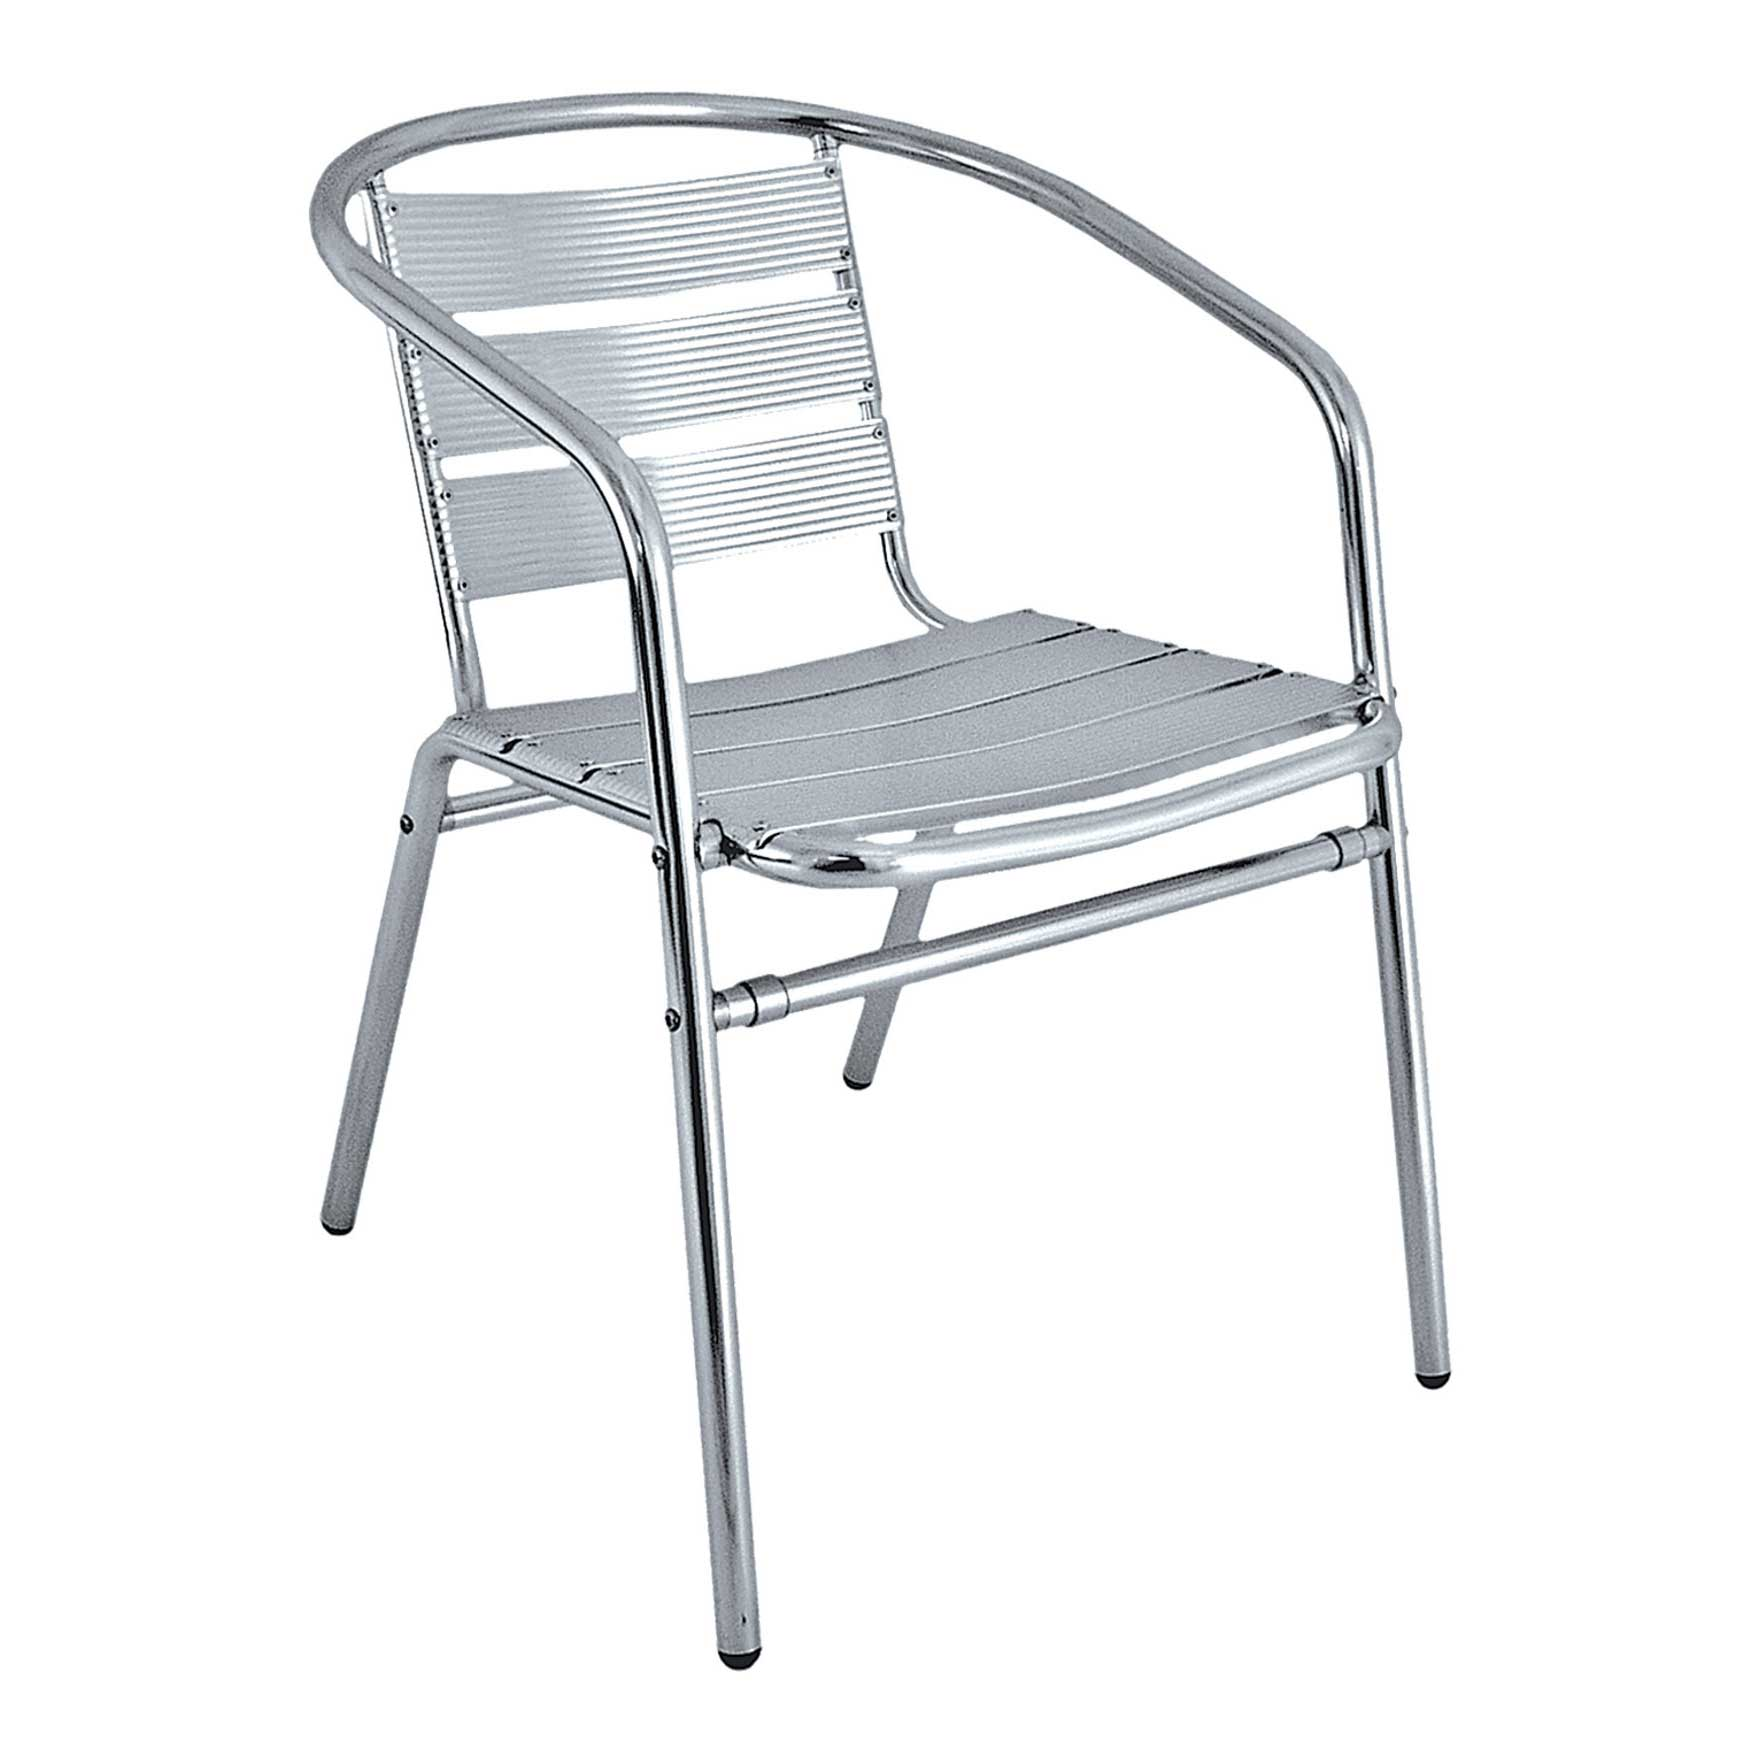 Patio Furniture Repair Clearwater Fl: Outdoor Contract Furniture